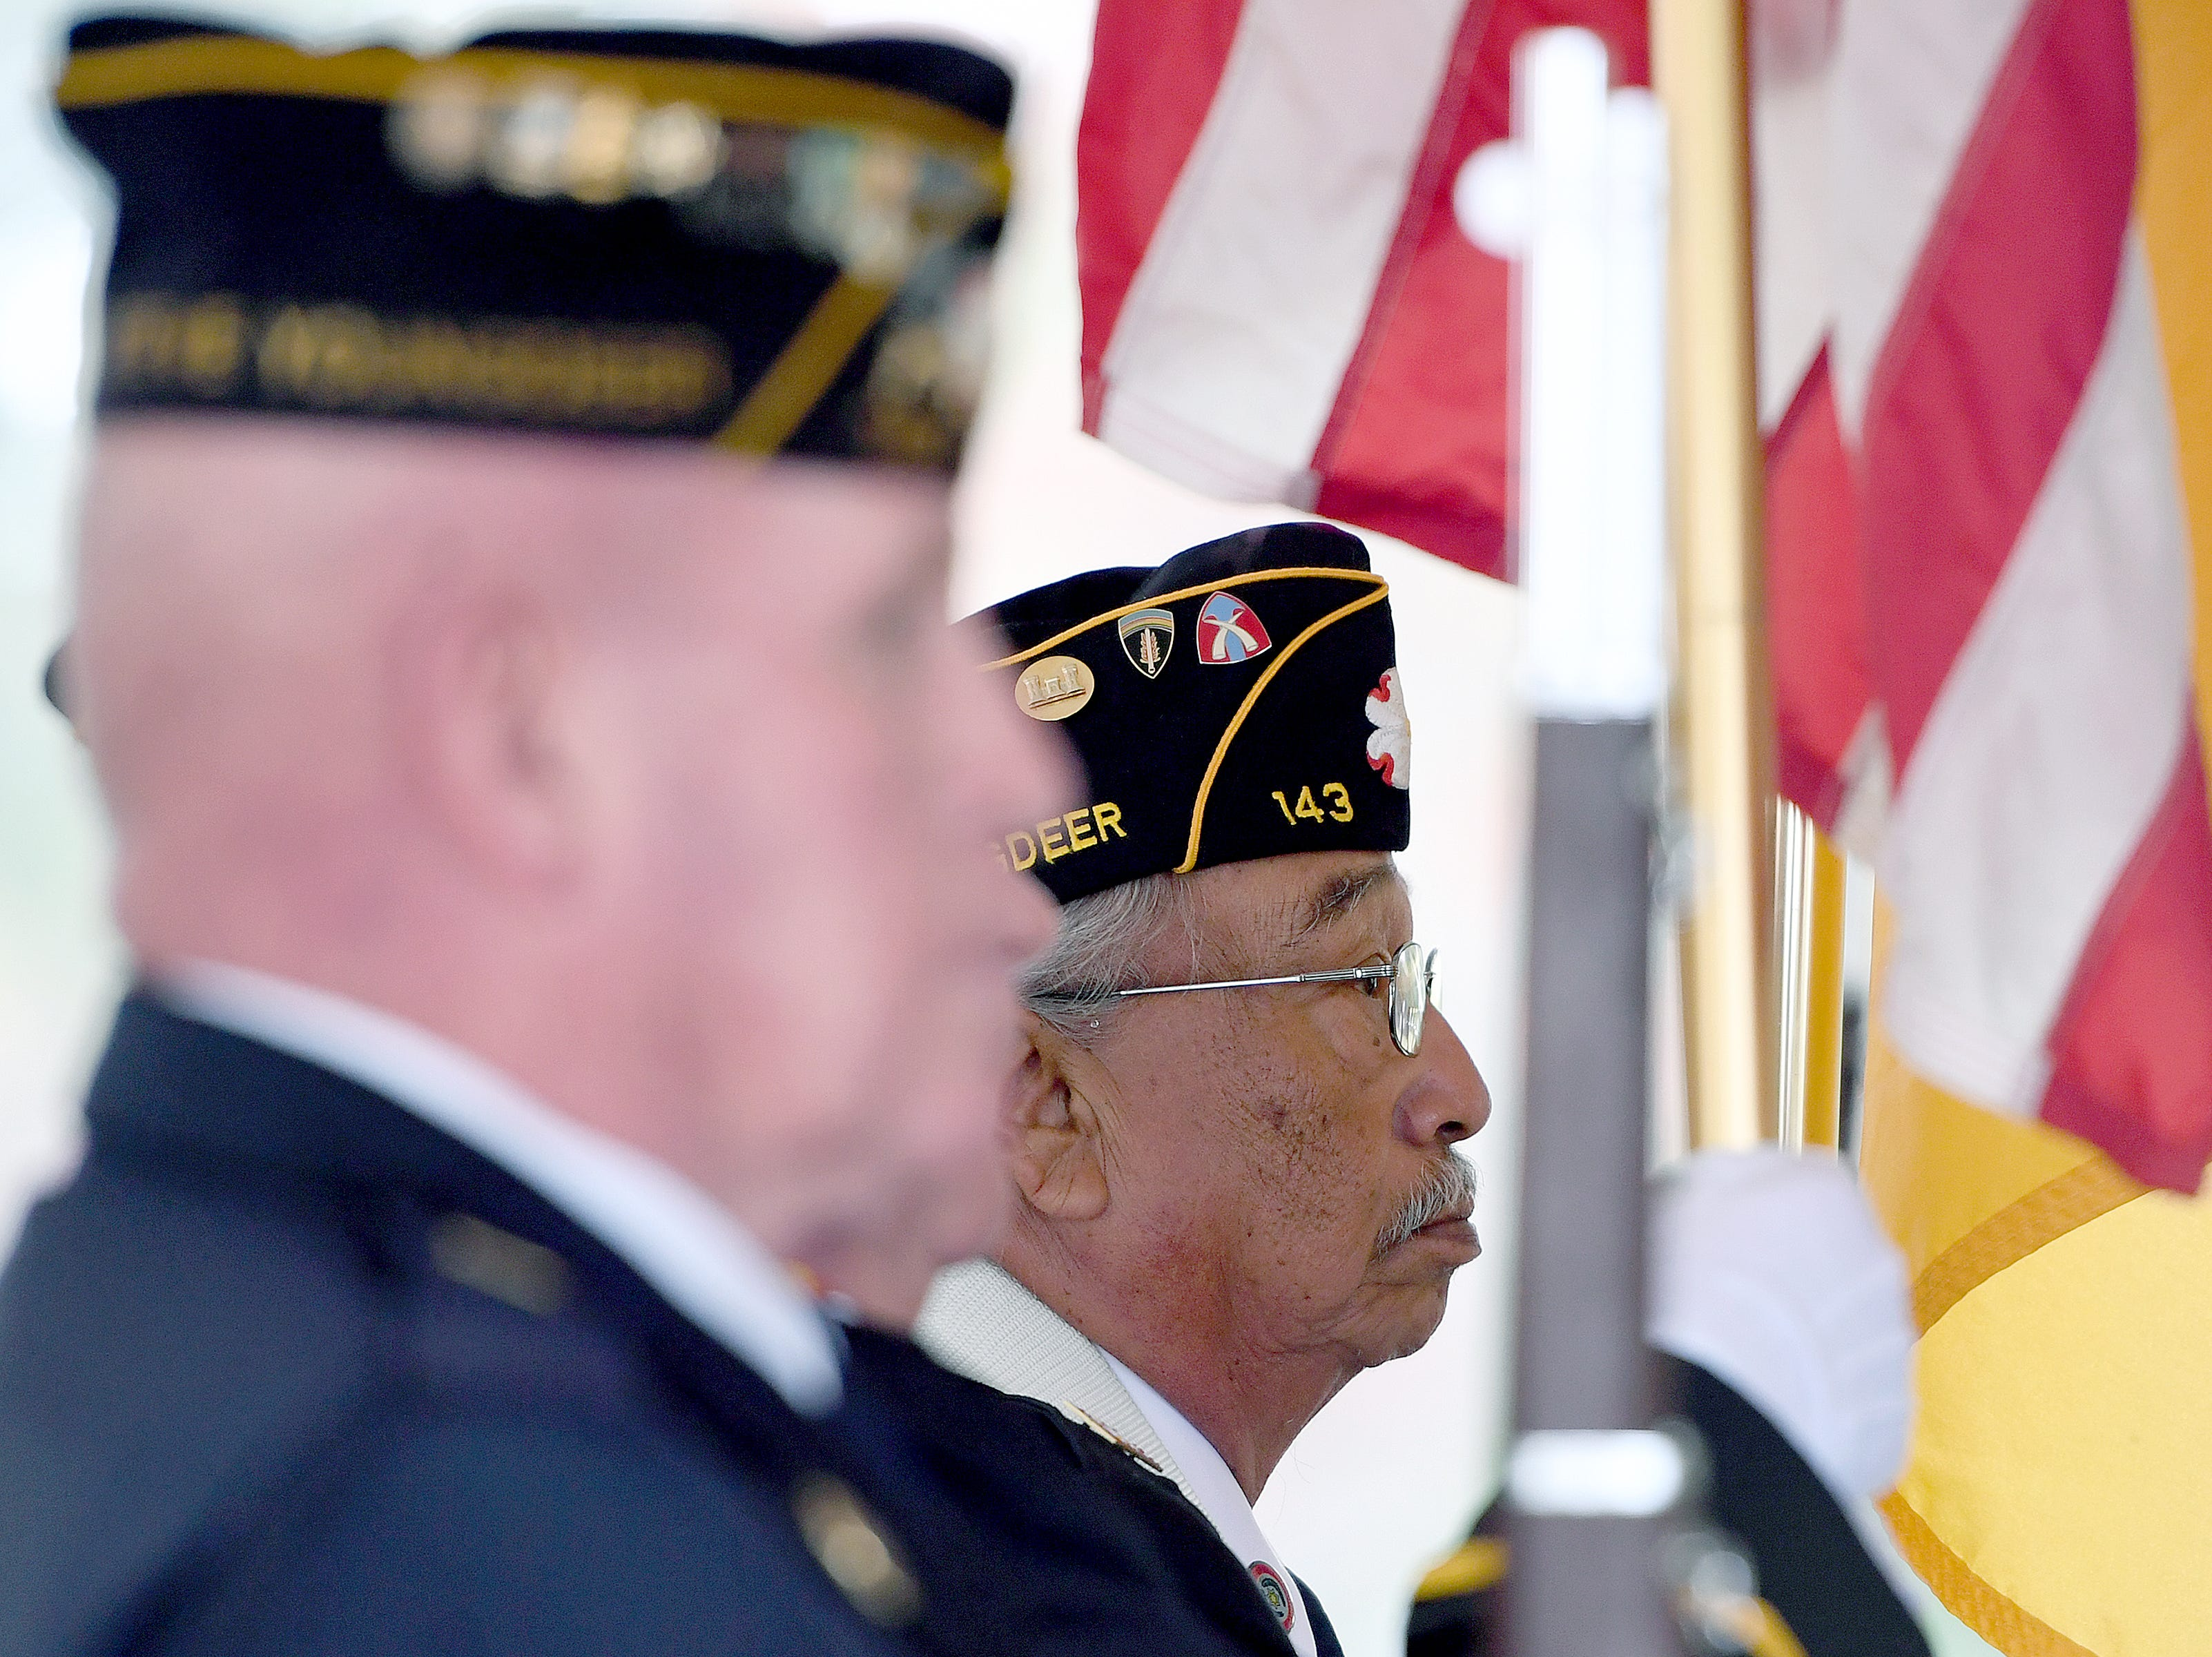 Members of the American Legion Steve Youngdeer Post 143 present the colors during a ceremony celebrating the opening of the Veterans Hope and Recovery Center on the campus of the Charles George VA Medical Center on Oct. 26, 2018.